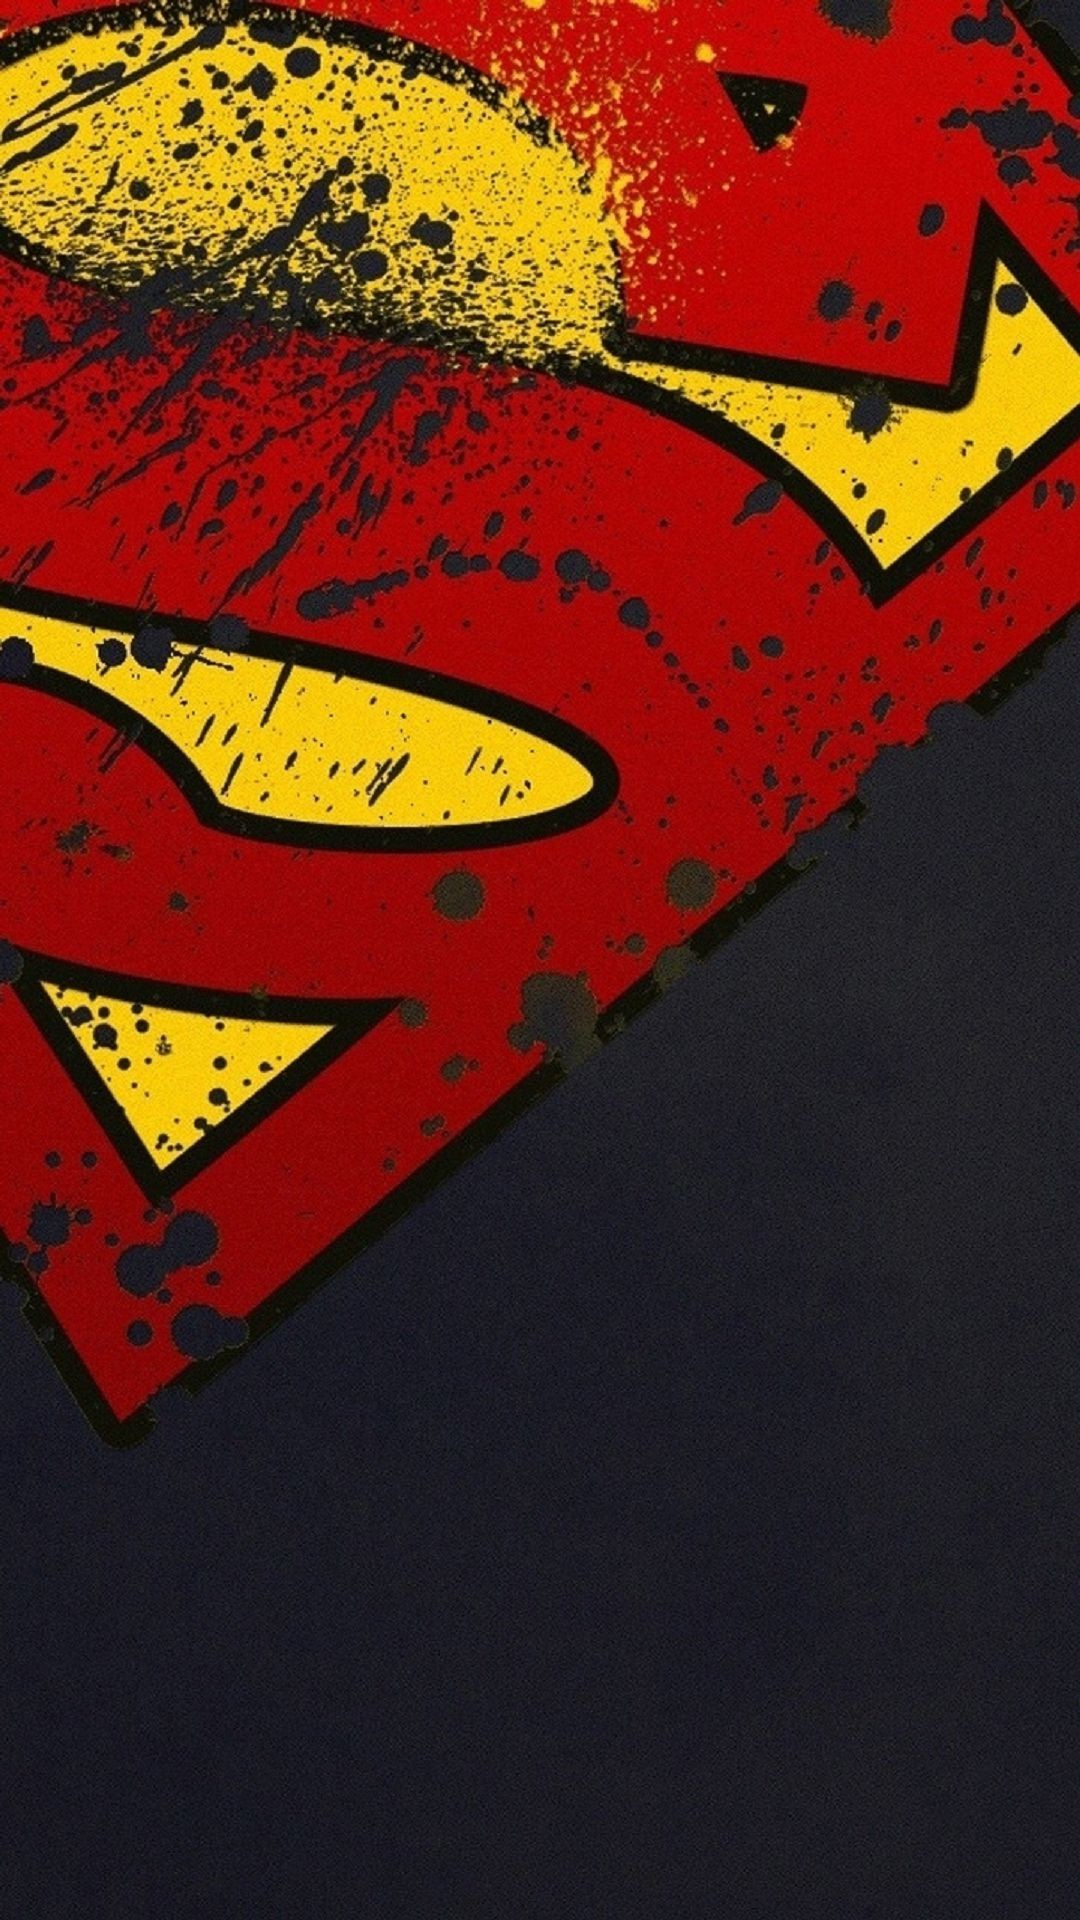 1080x1920 Superman Logo iPhone Wallpaper HD - WallpaperSafari